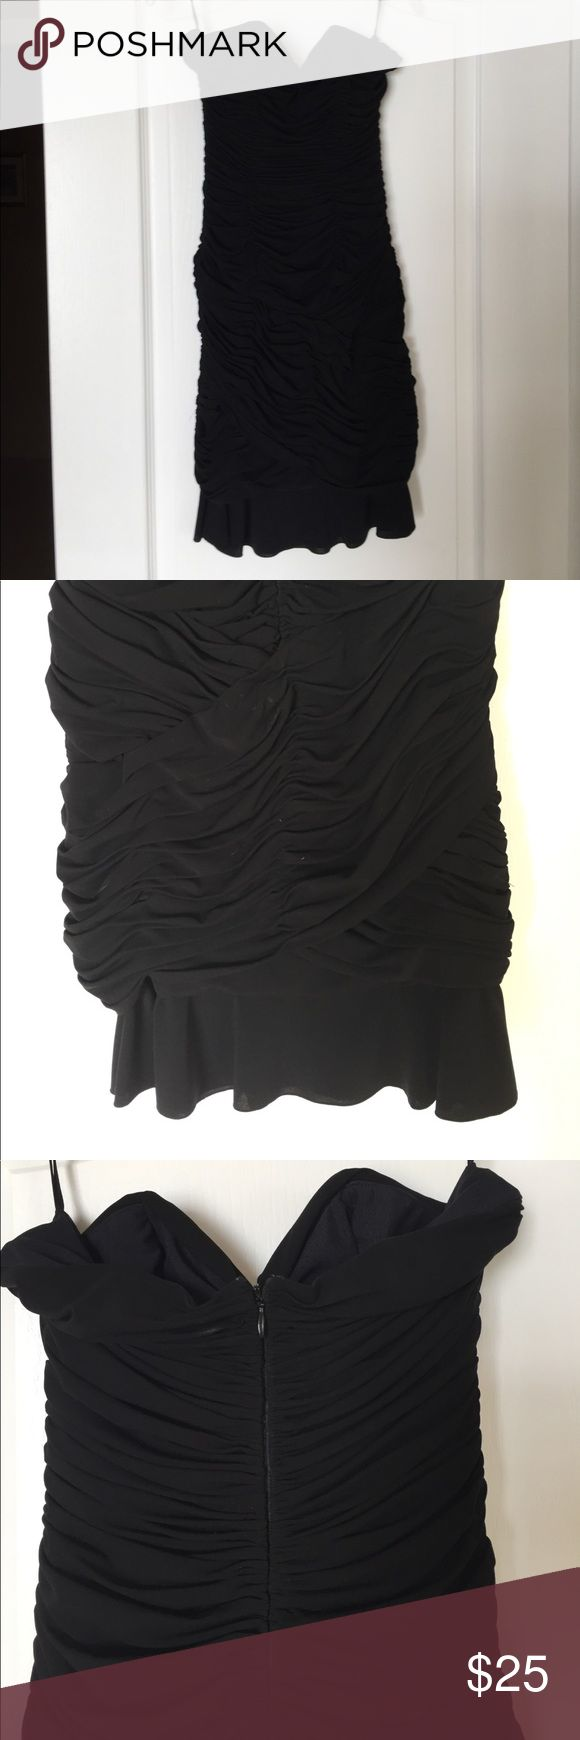 Mayda Cisneros Cocktail Dress Stunning black, form fitting Cocktail Dress, ruched and strapless with back zipper and boning to prevent sliding. Mayda Cisneros Dresses Mini